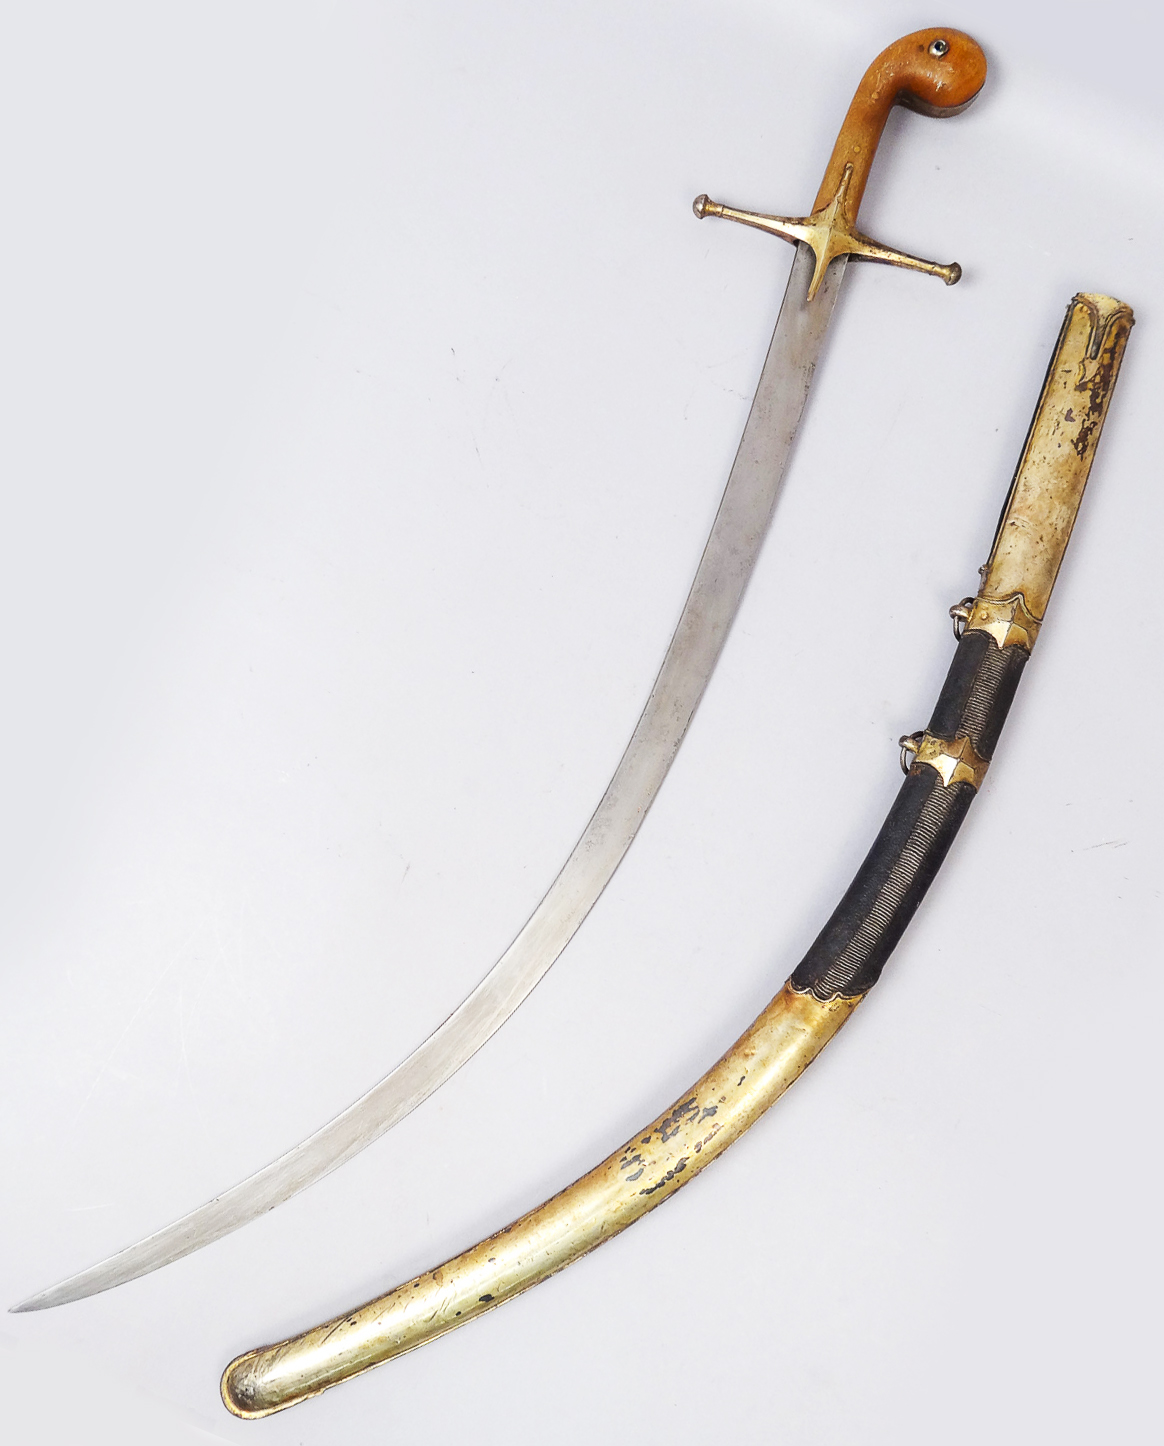 Arabic Steel and Wooden Handled Saber with Scabbard